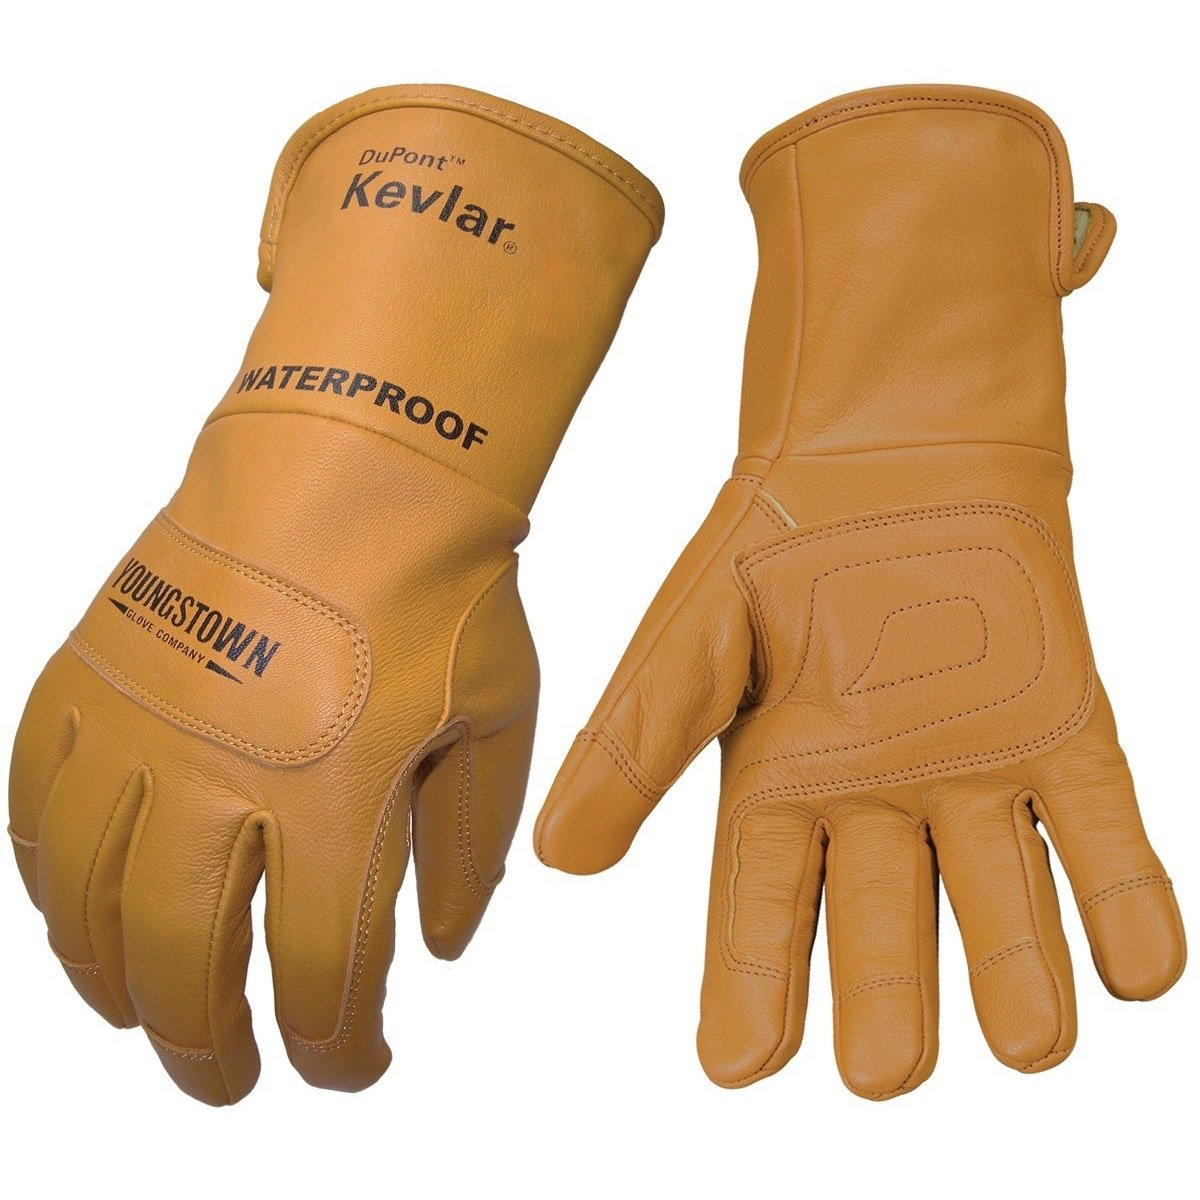 Leather work gloves with wool lining - Progarm 2678 Glove Anti Static 55 5cal Cm